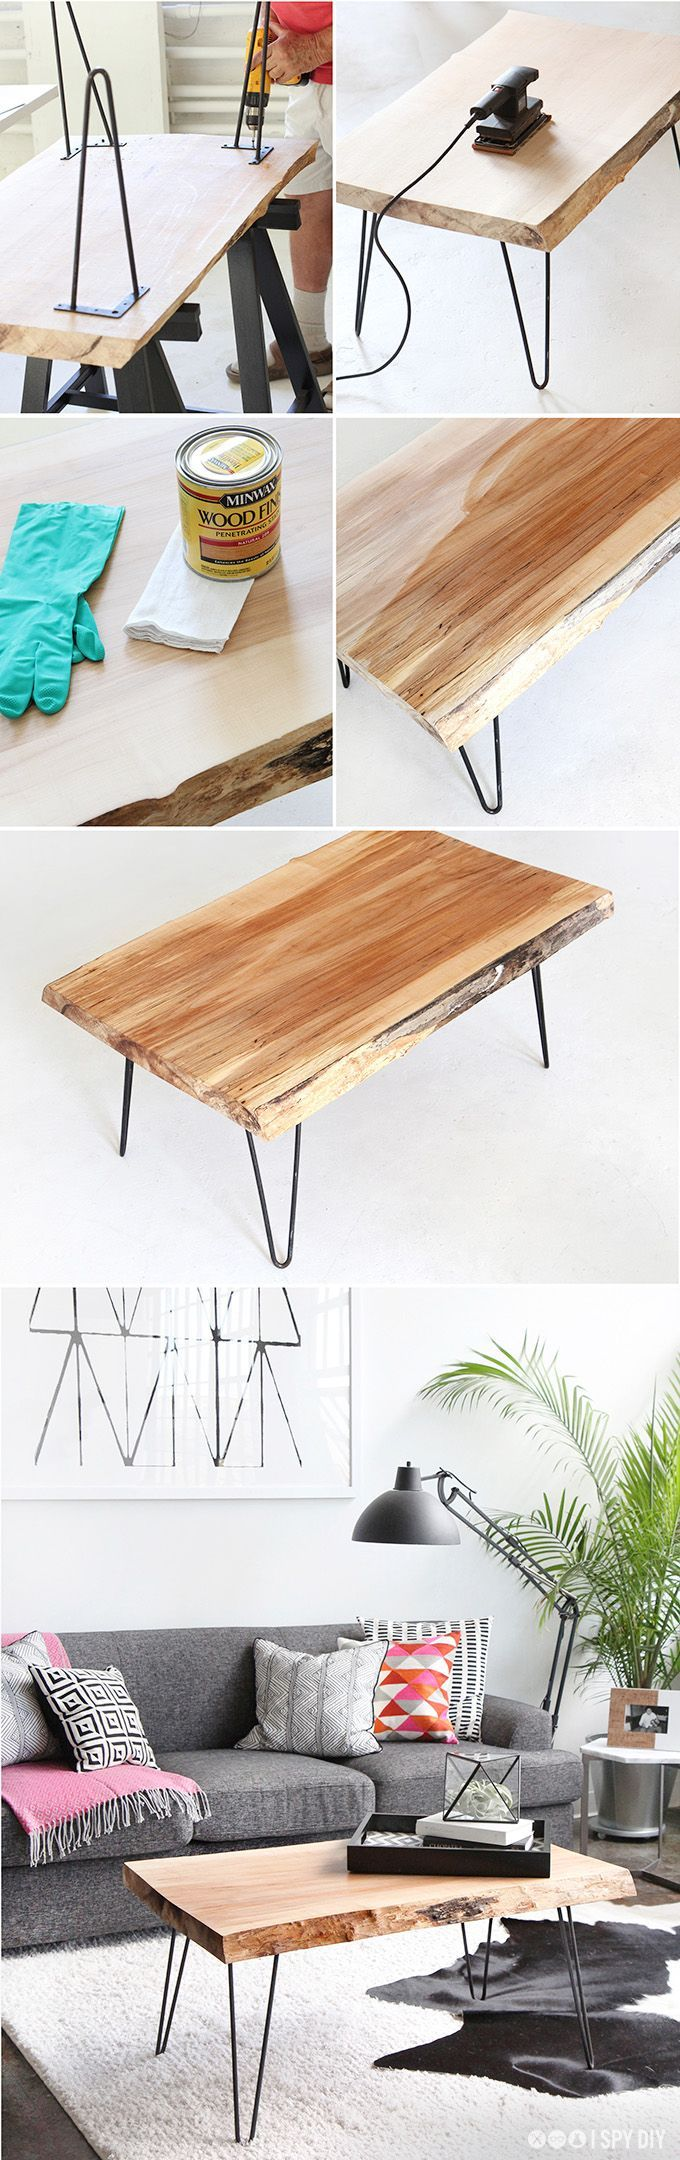 best diy images on pinterest bricolage diy presents and weaving